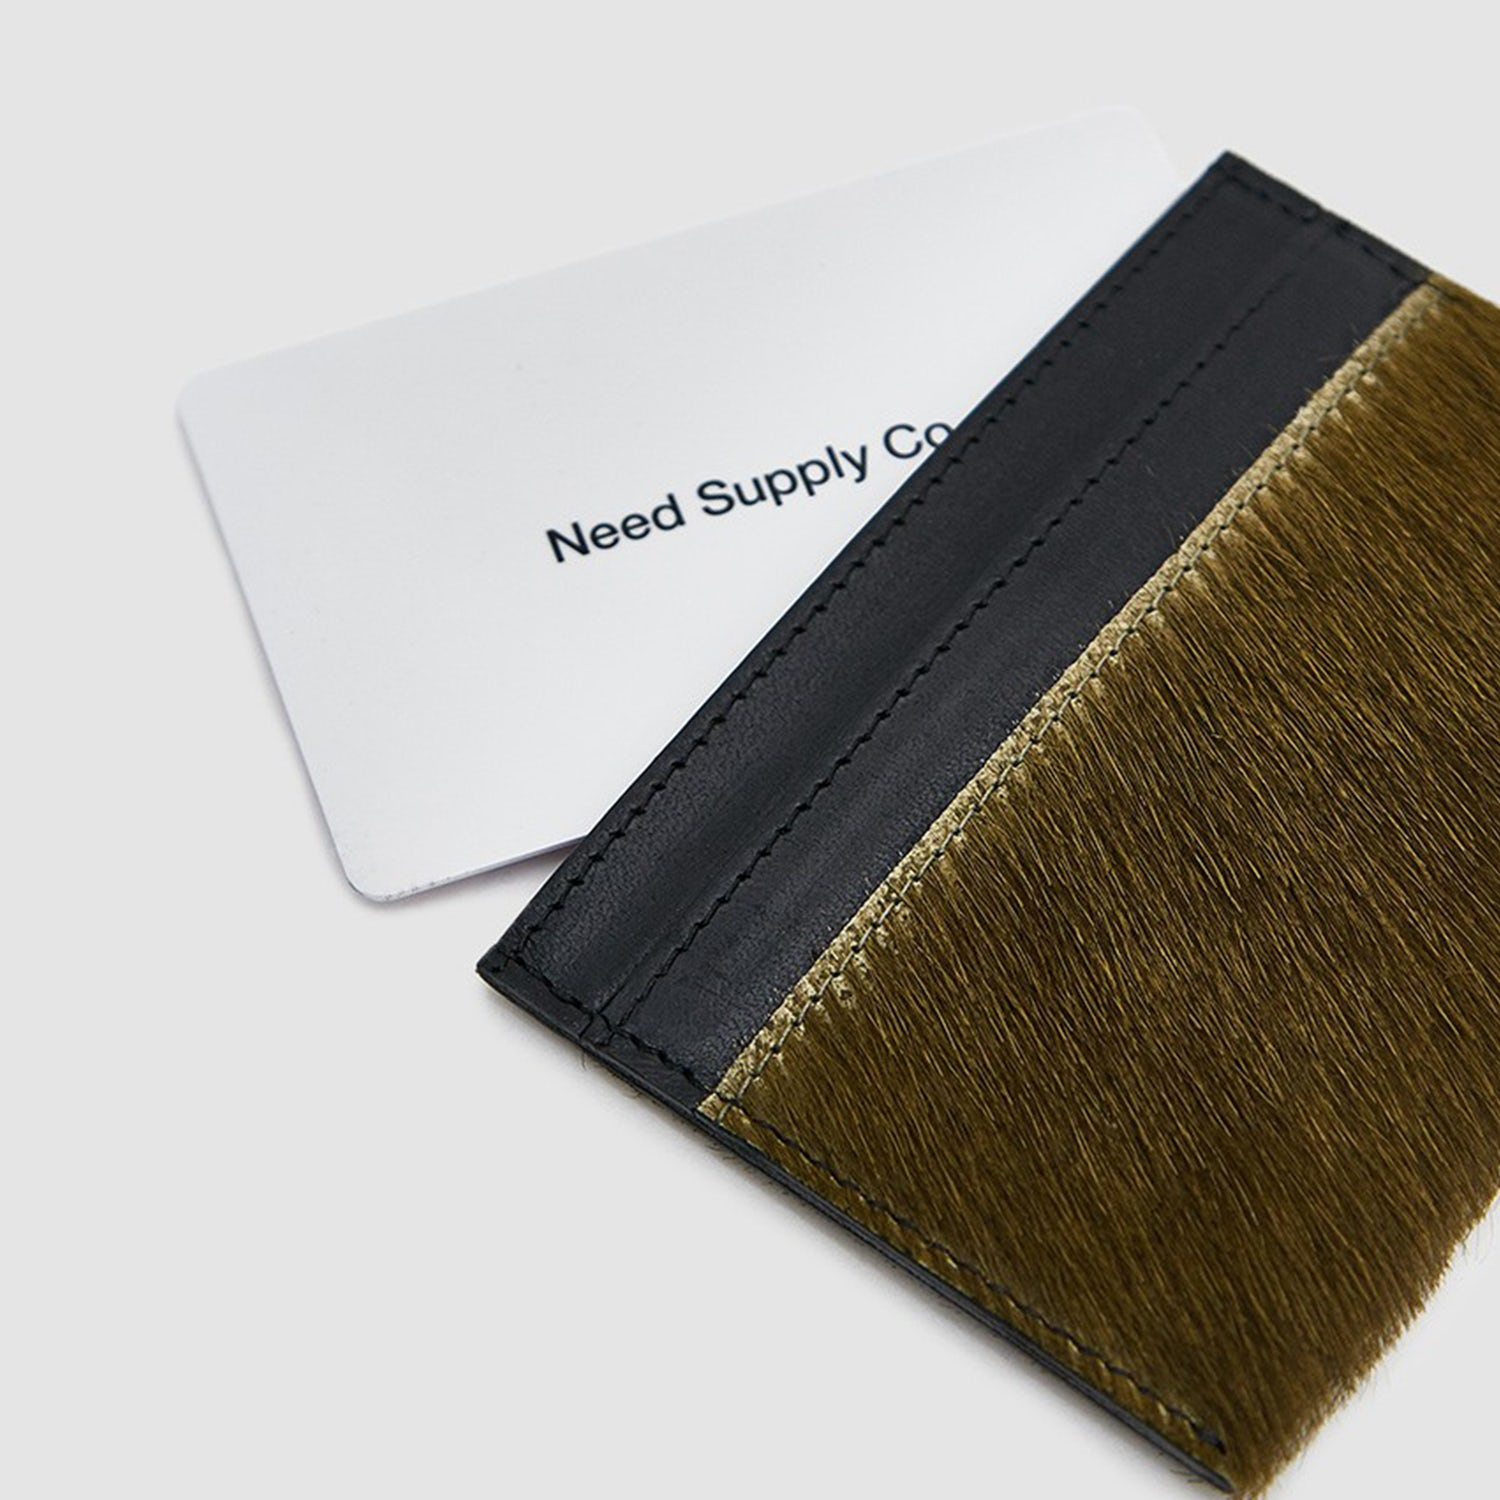 need supply dries van noten card wallet